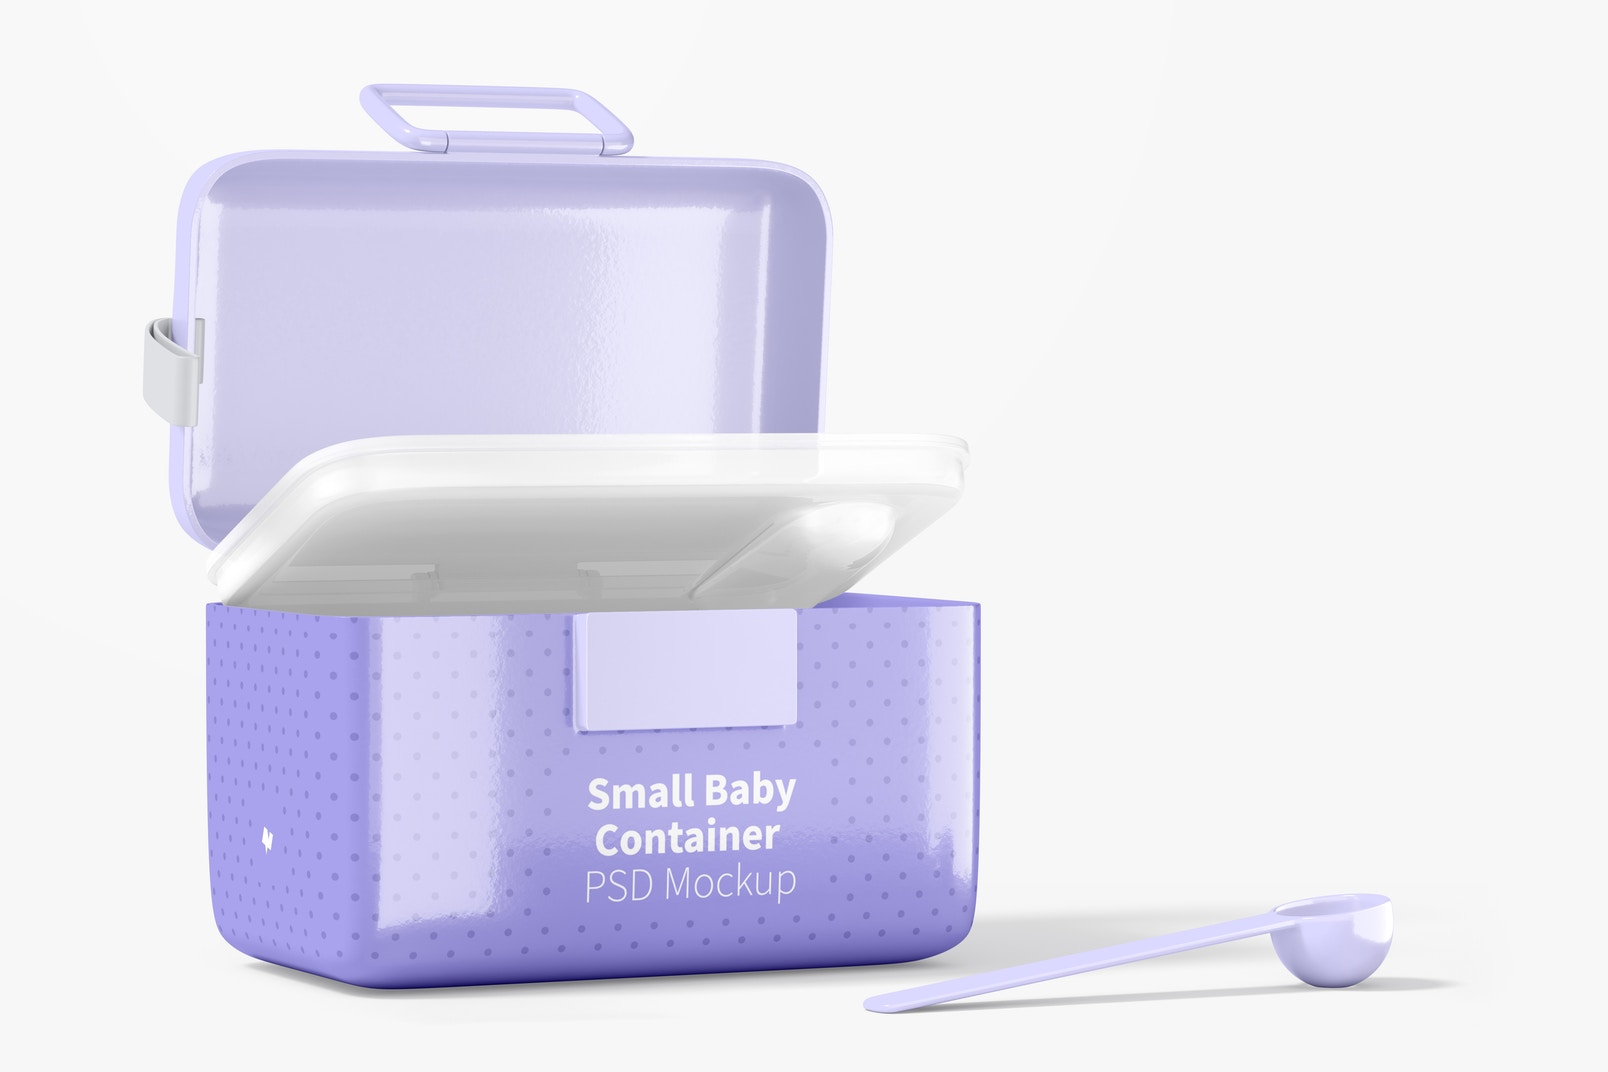 Small Baby Milk Powder Container Mockup, Opened